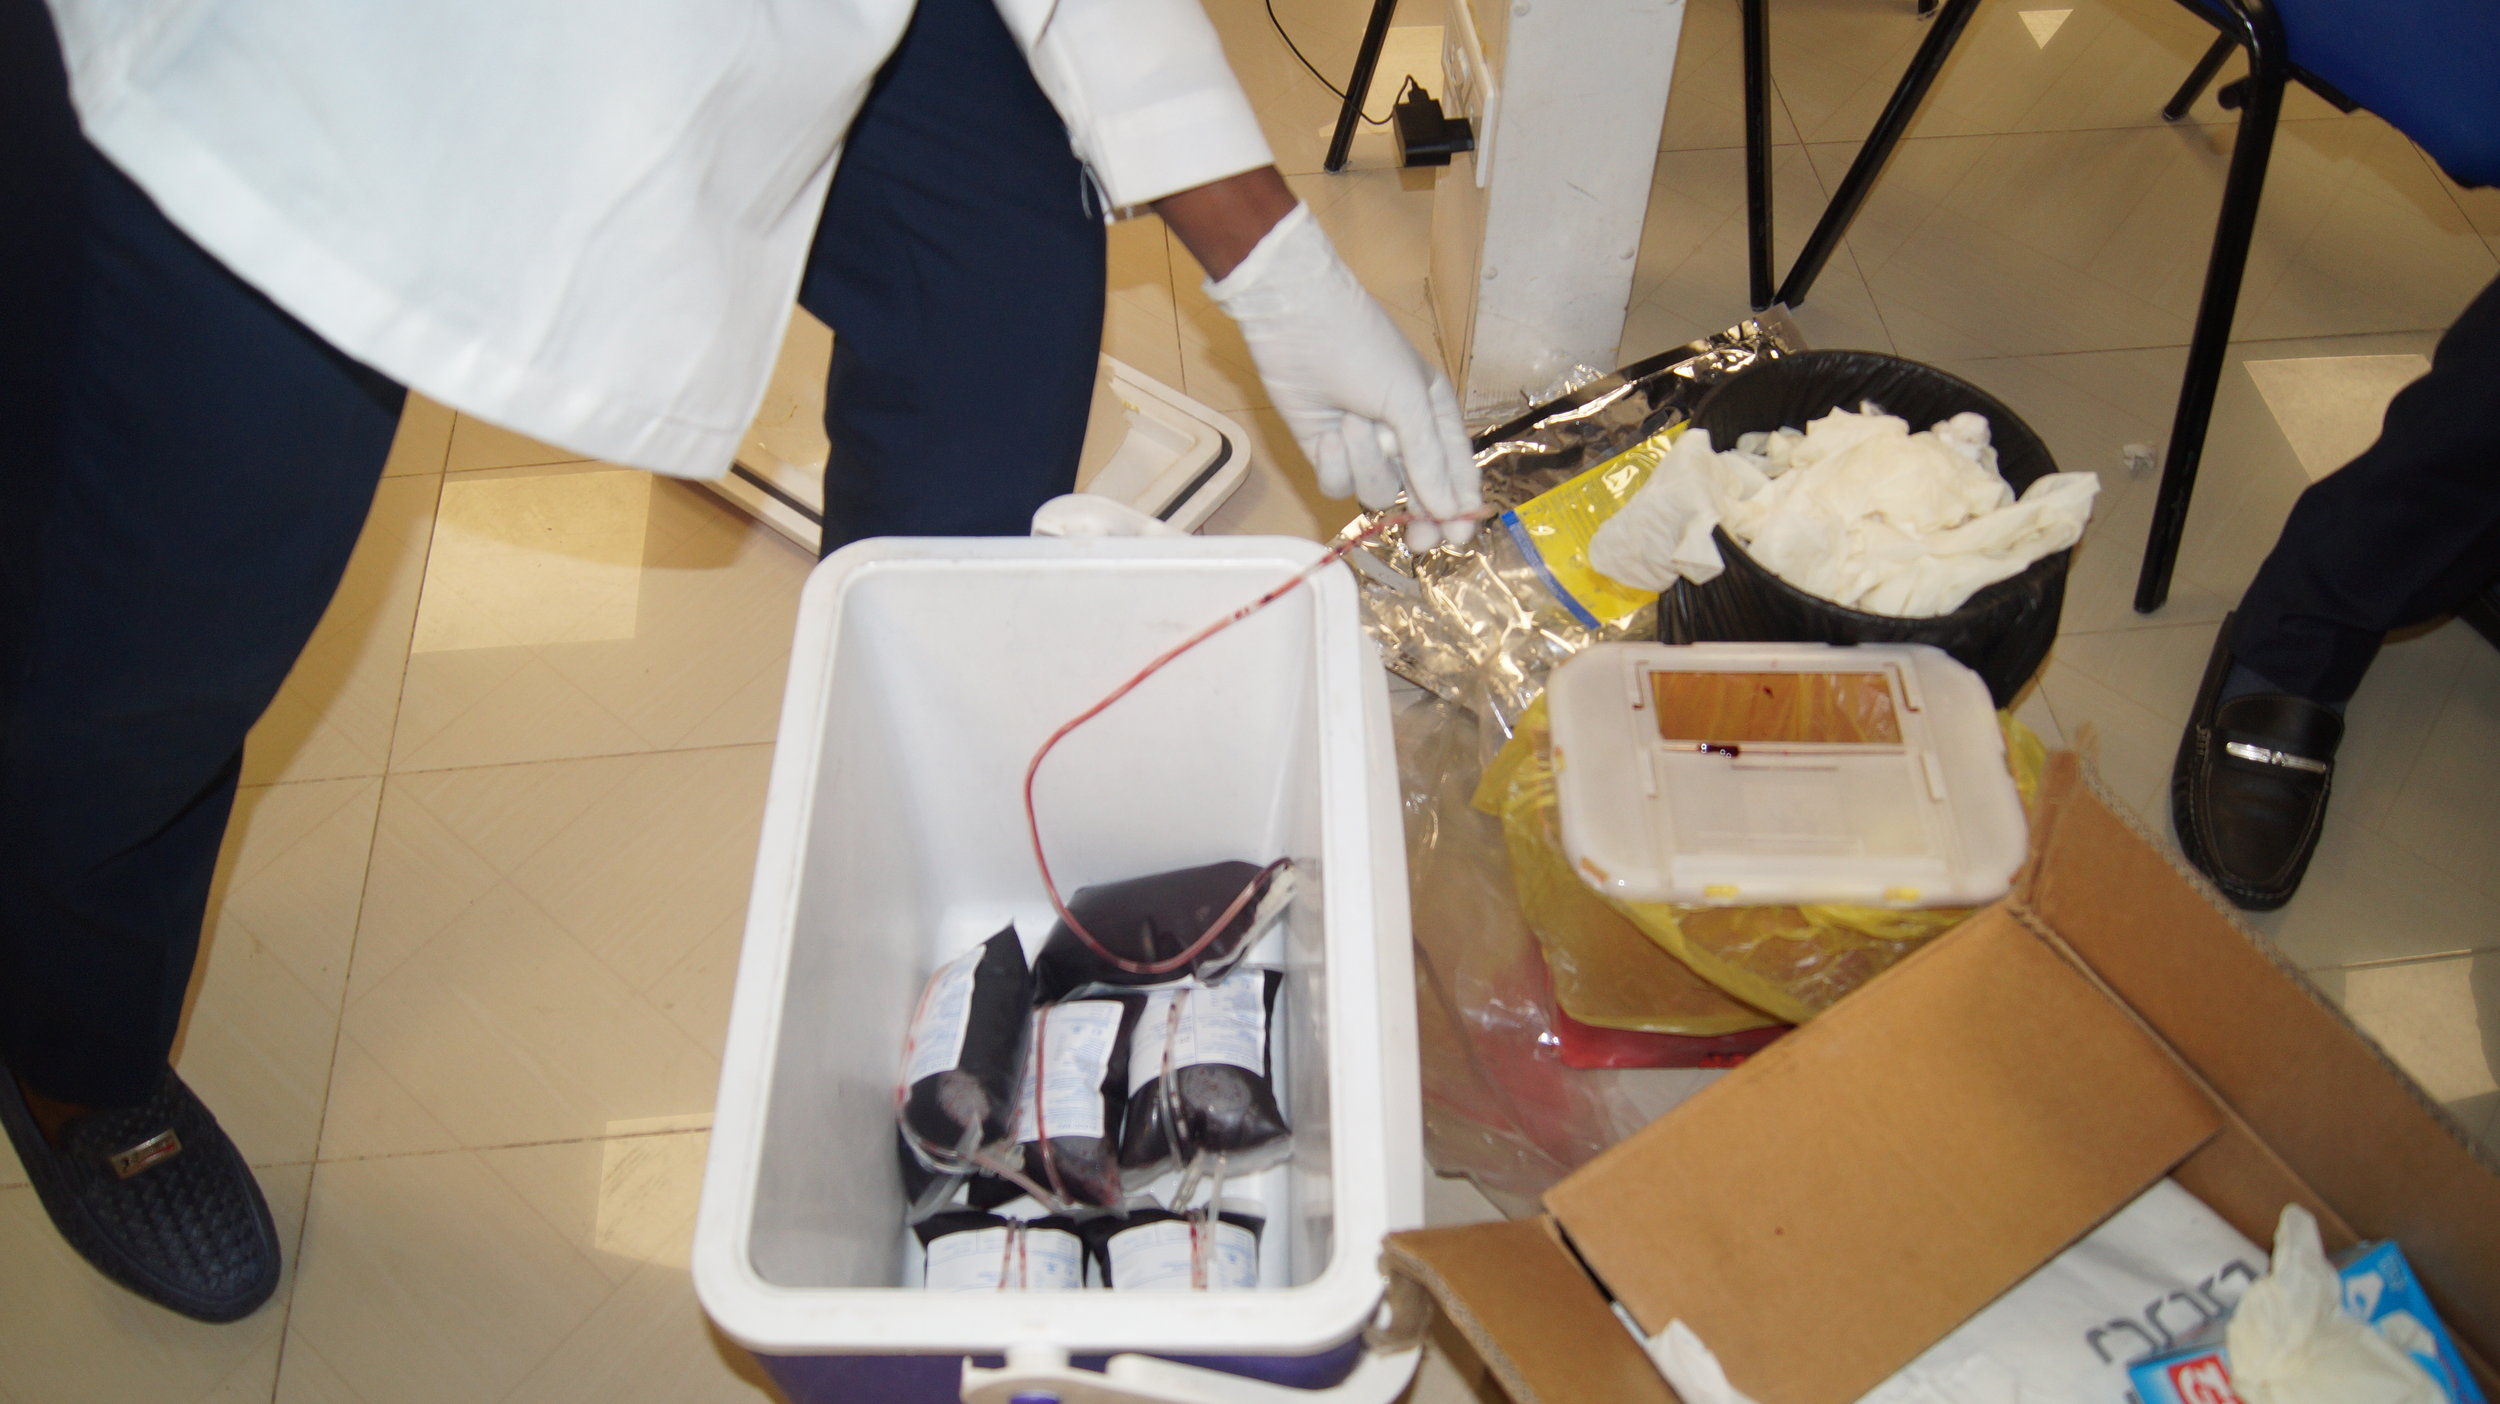 All that good stuff! The Red Cross Team stores the blood bags in a cooler to preserve till it gets to the blood bank